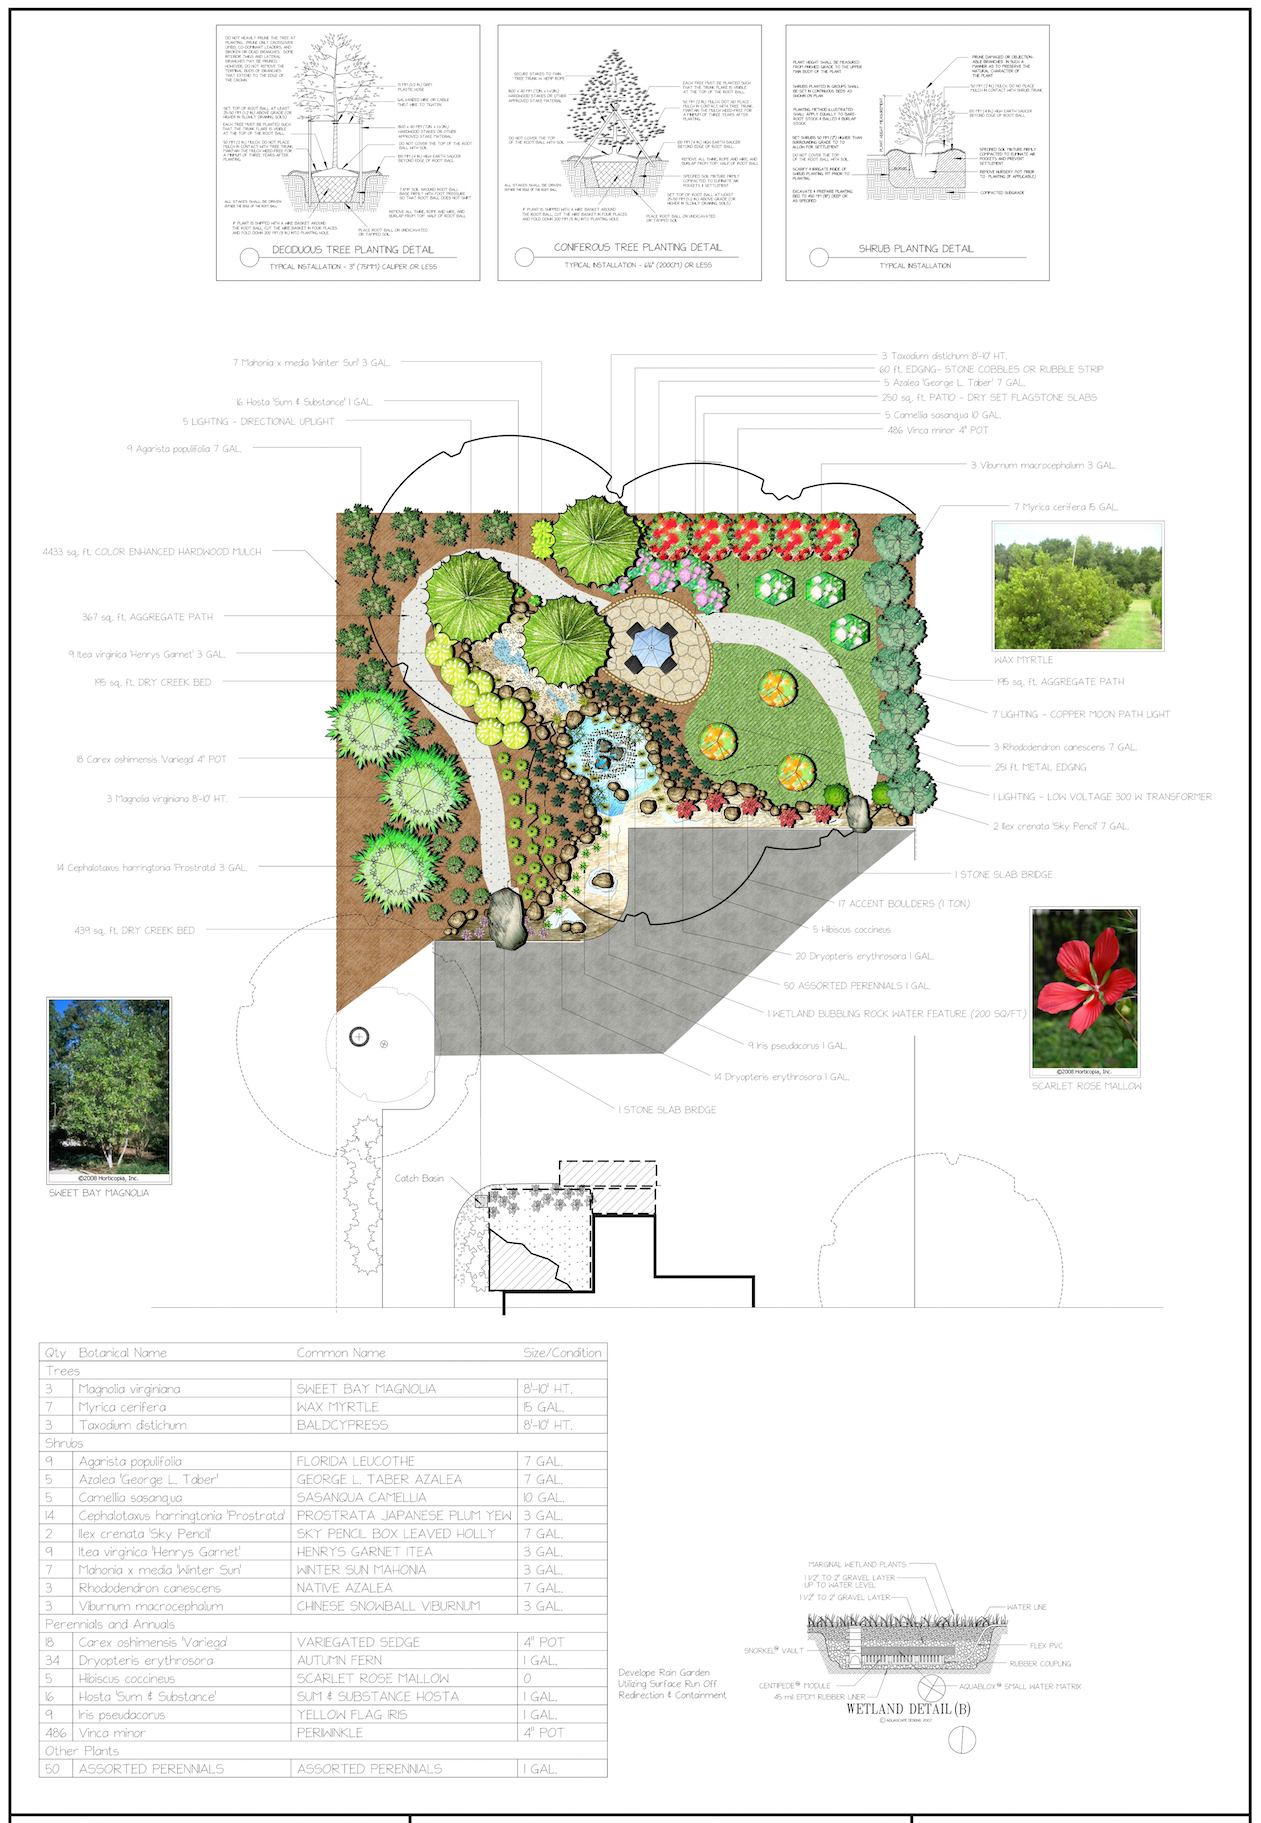 new kent natural area revised